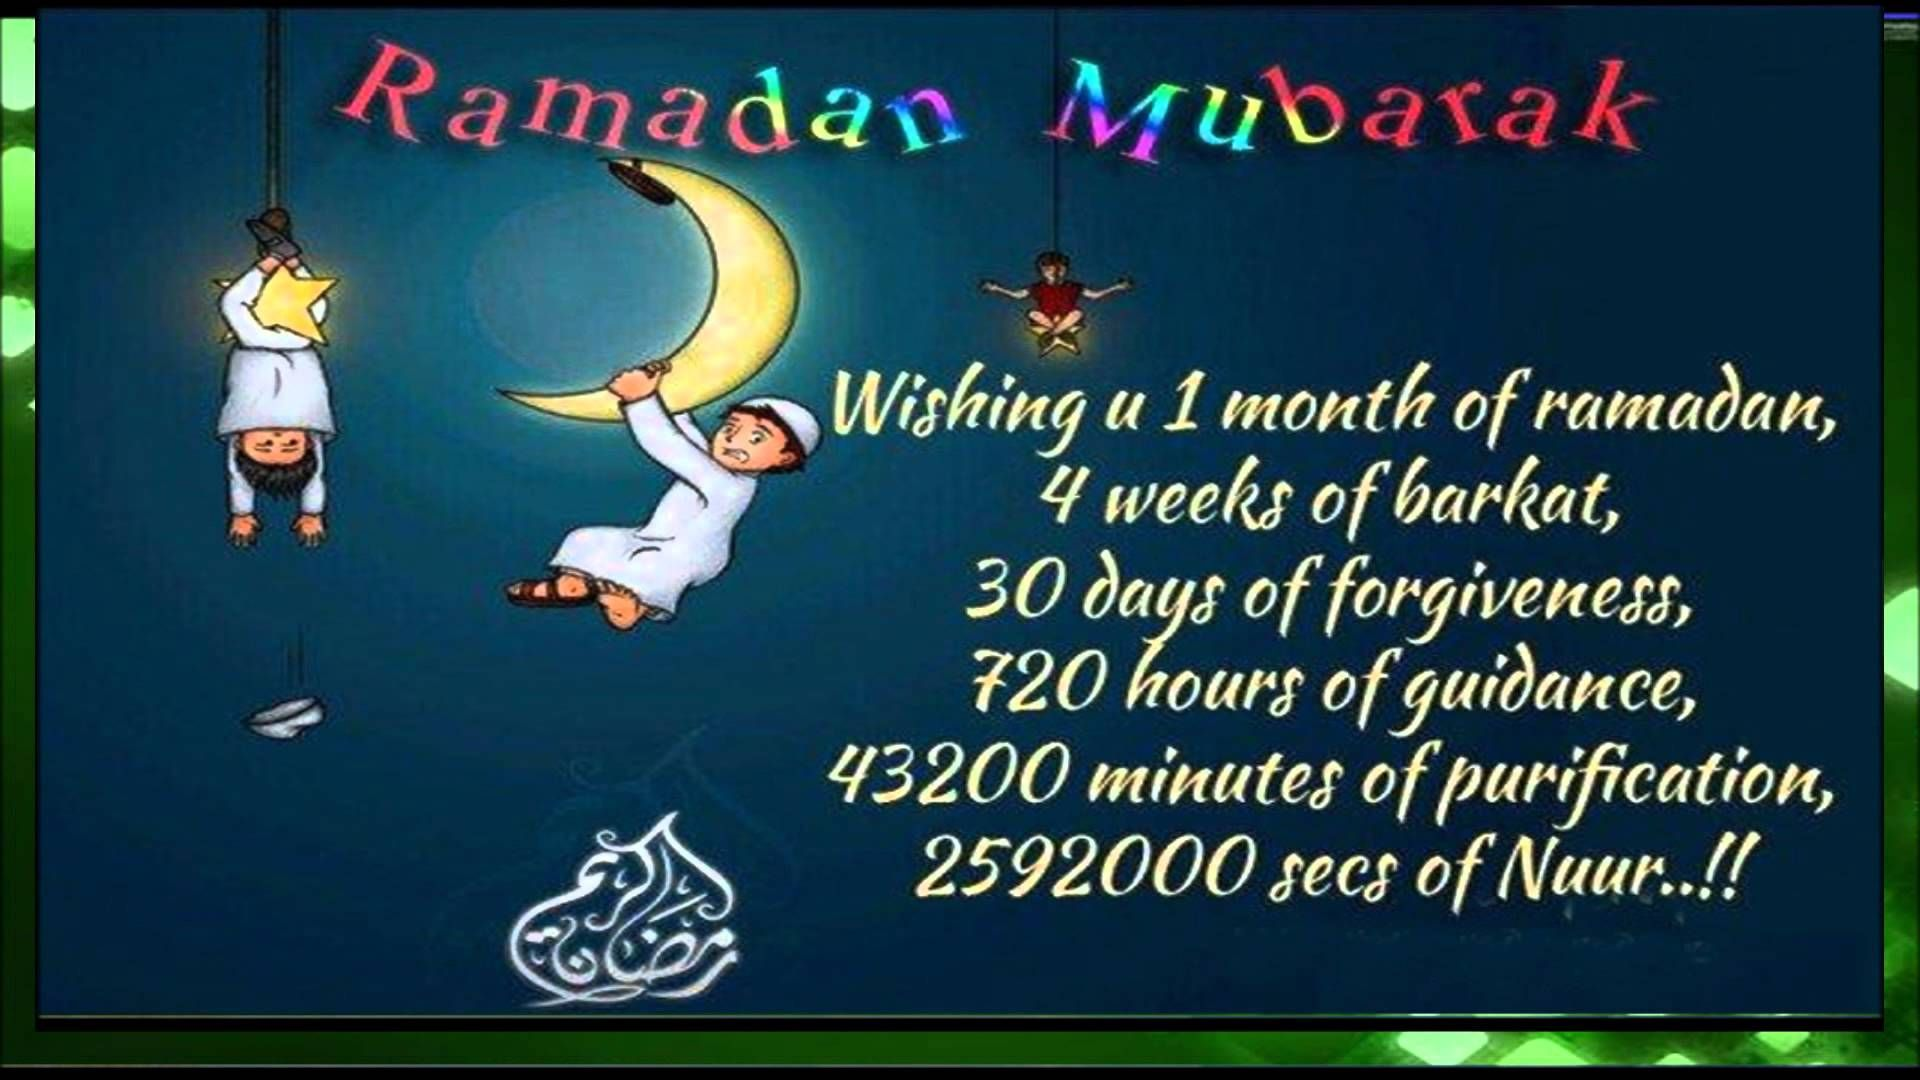 Happy ramadan messages for facebook and whatsapp ramadan images happy ramadan messages for facebook and whatsapp m4hsunfo